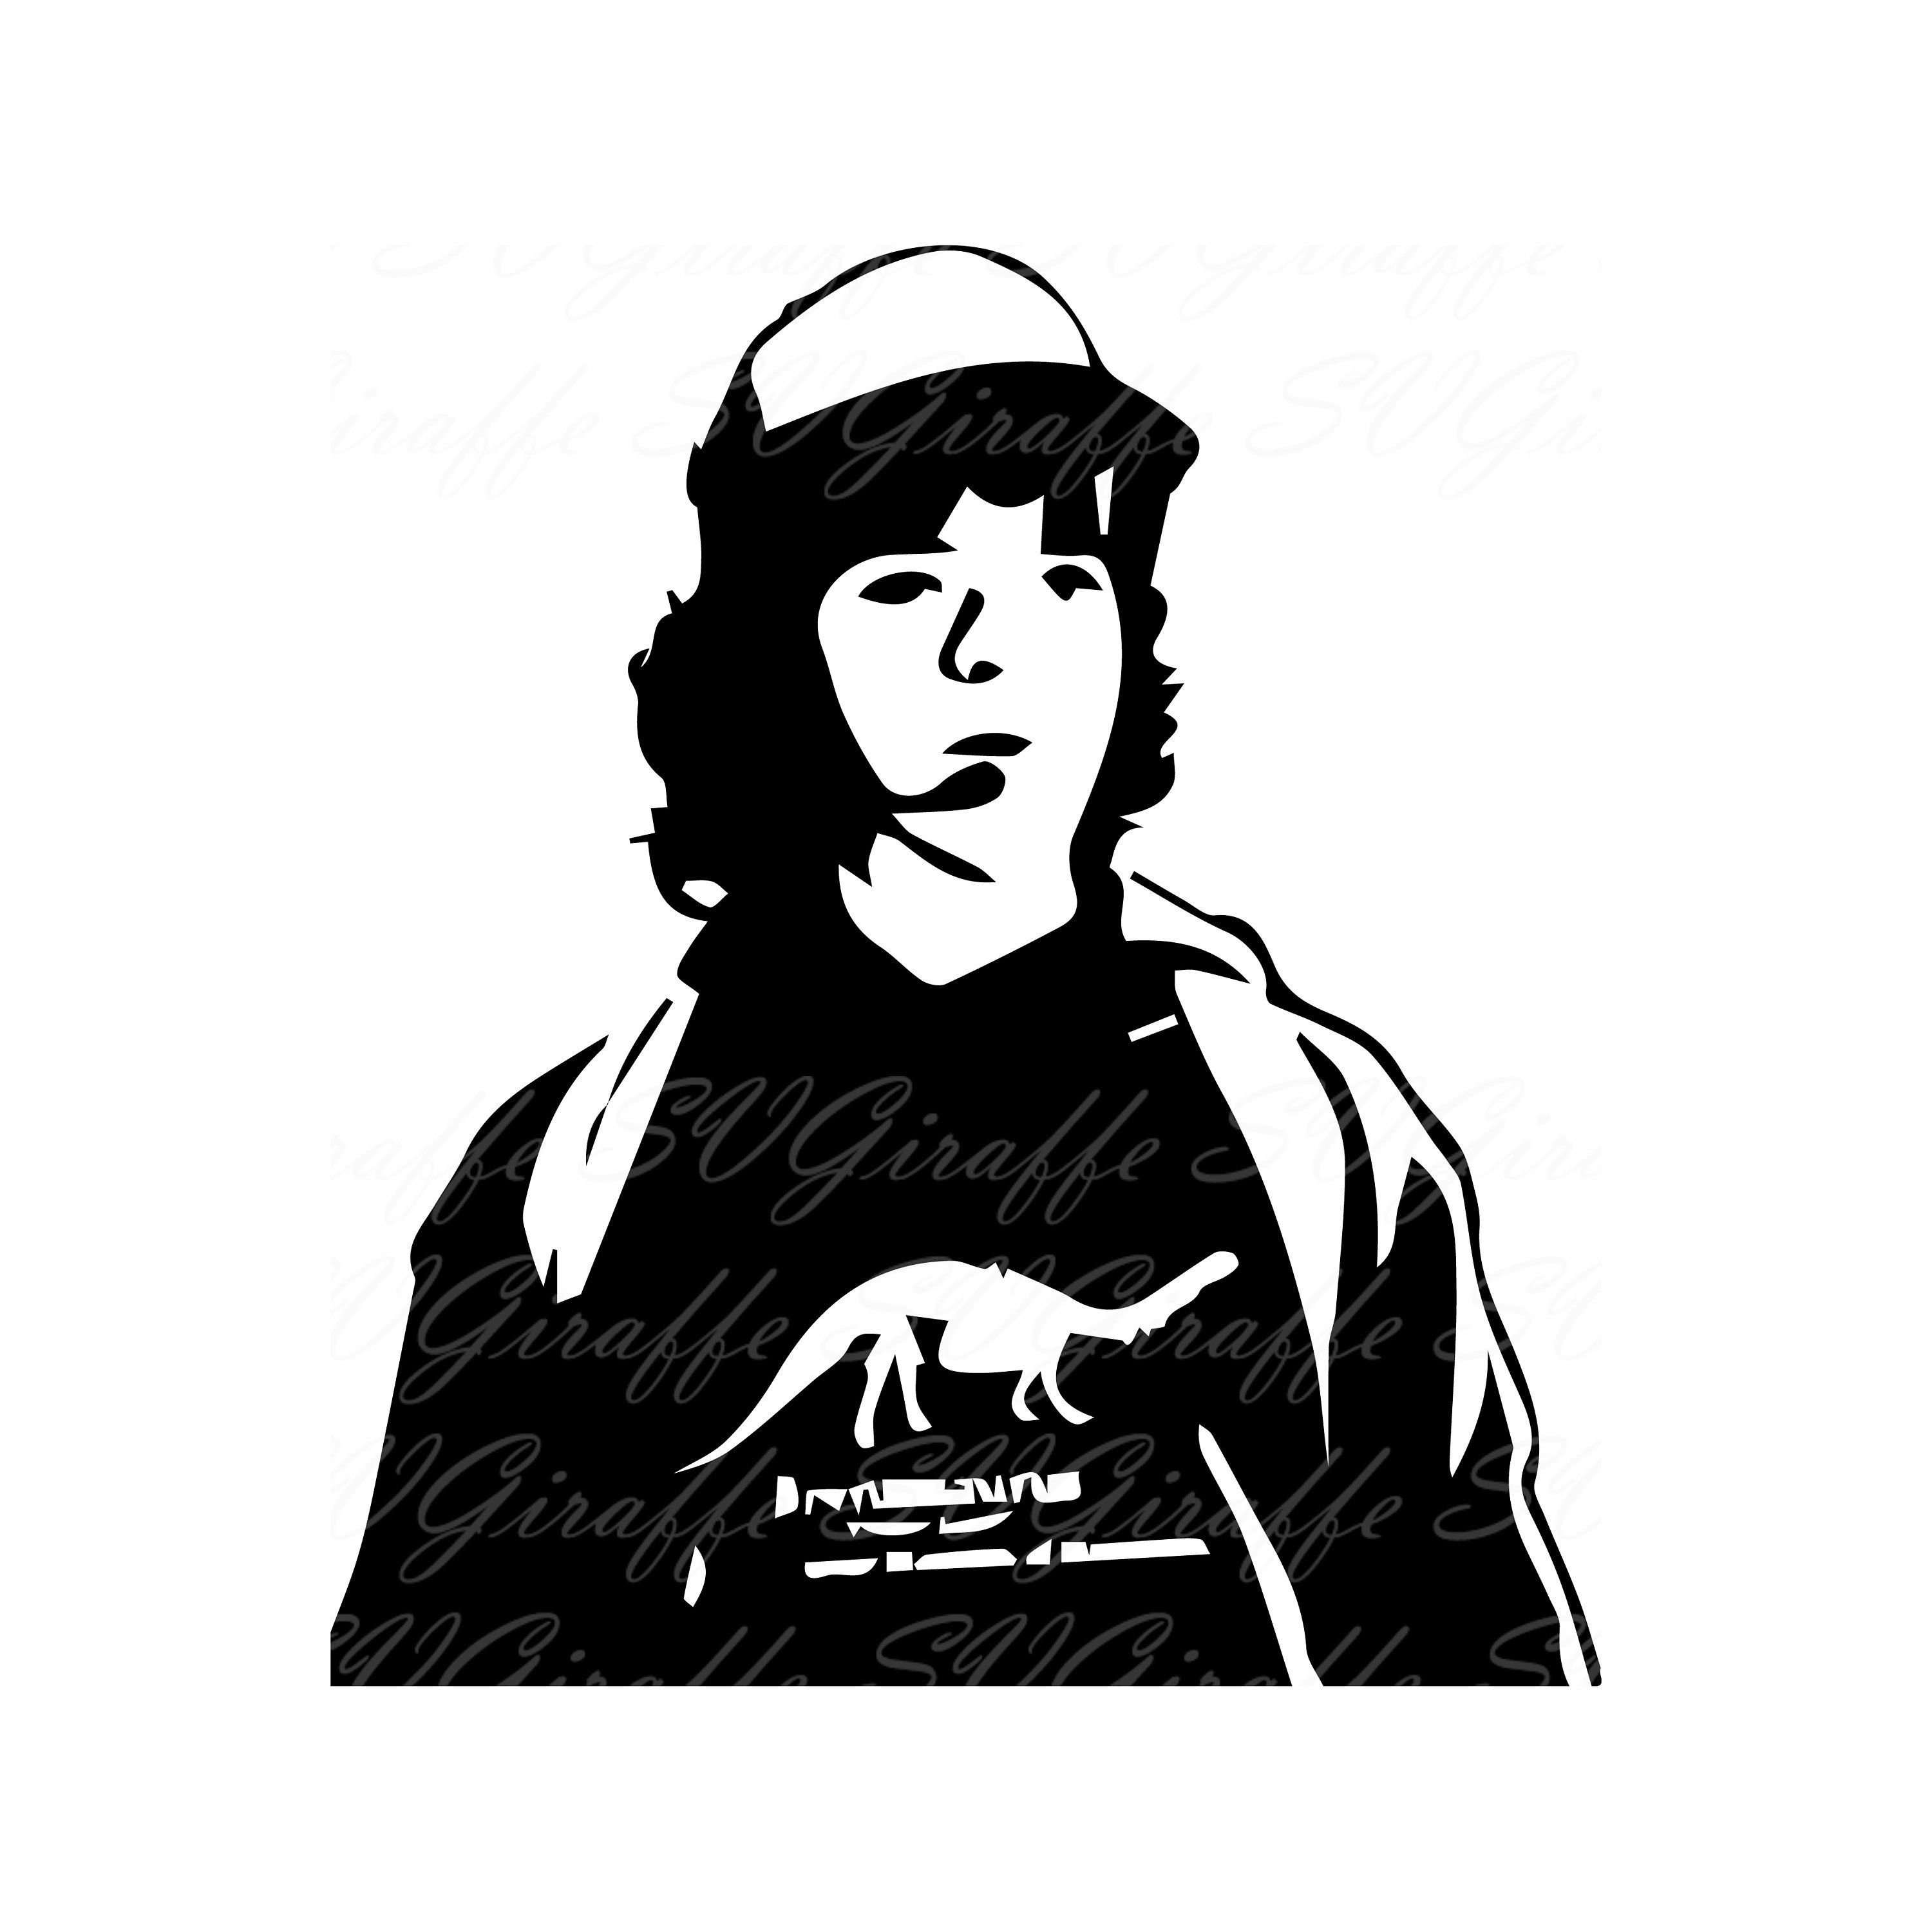 Dustin Stranger Things SVG DXF PNG pdf jpg files.